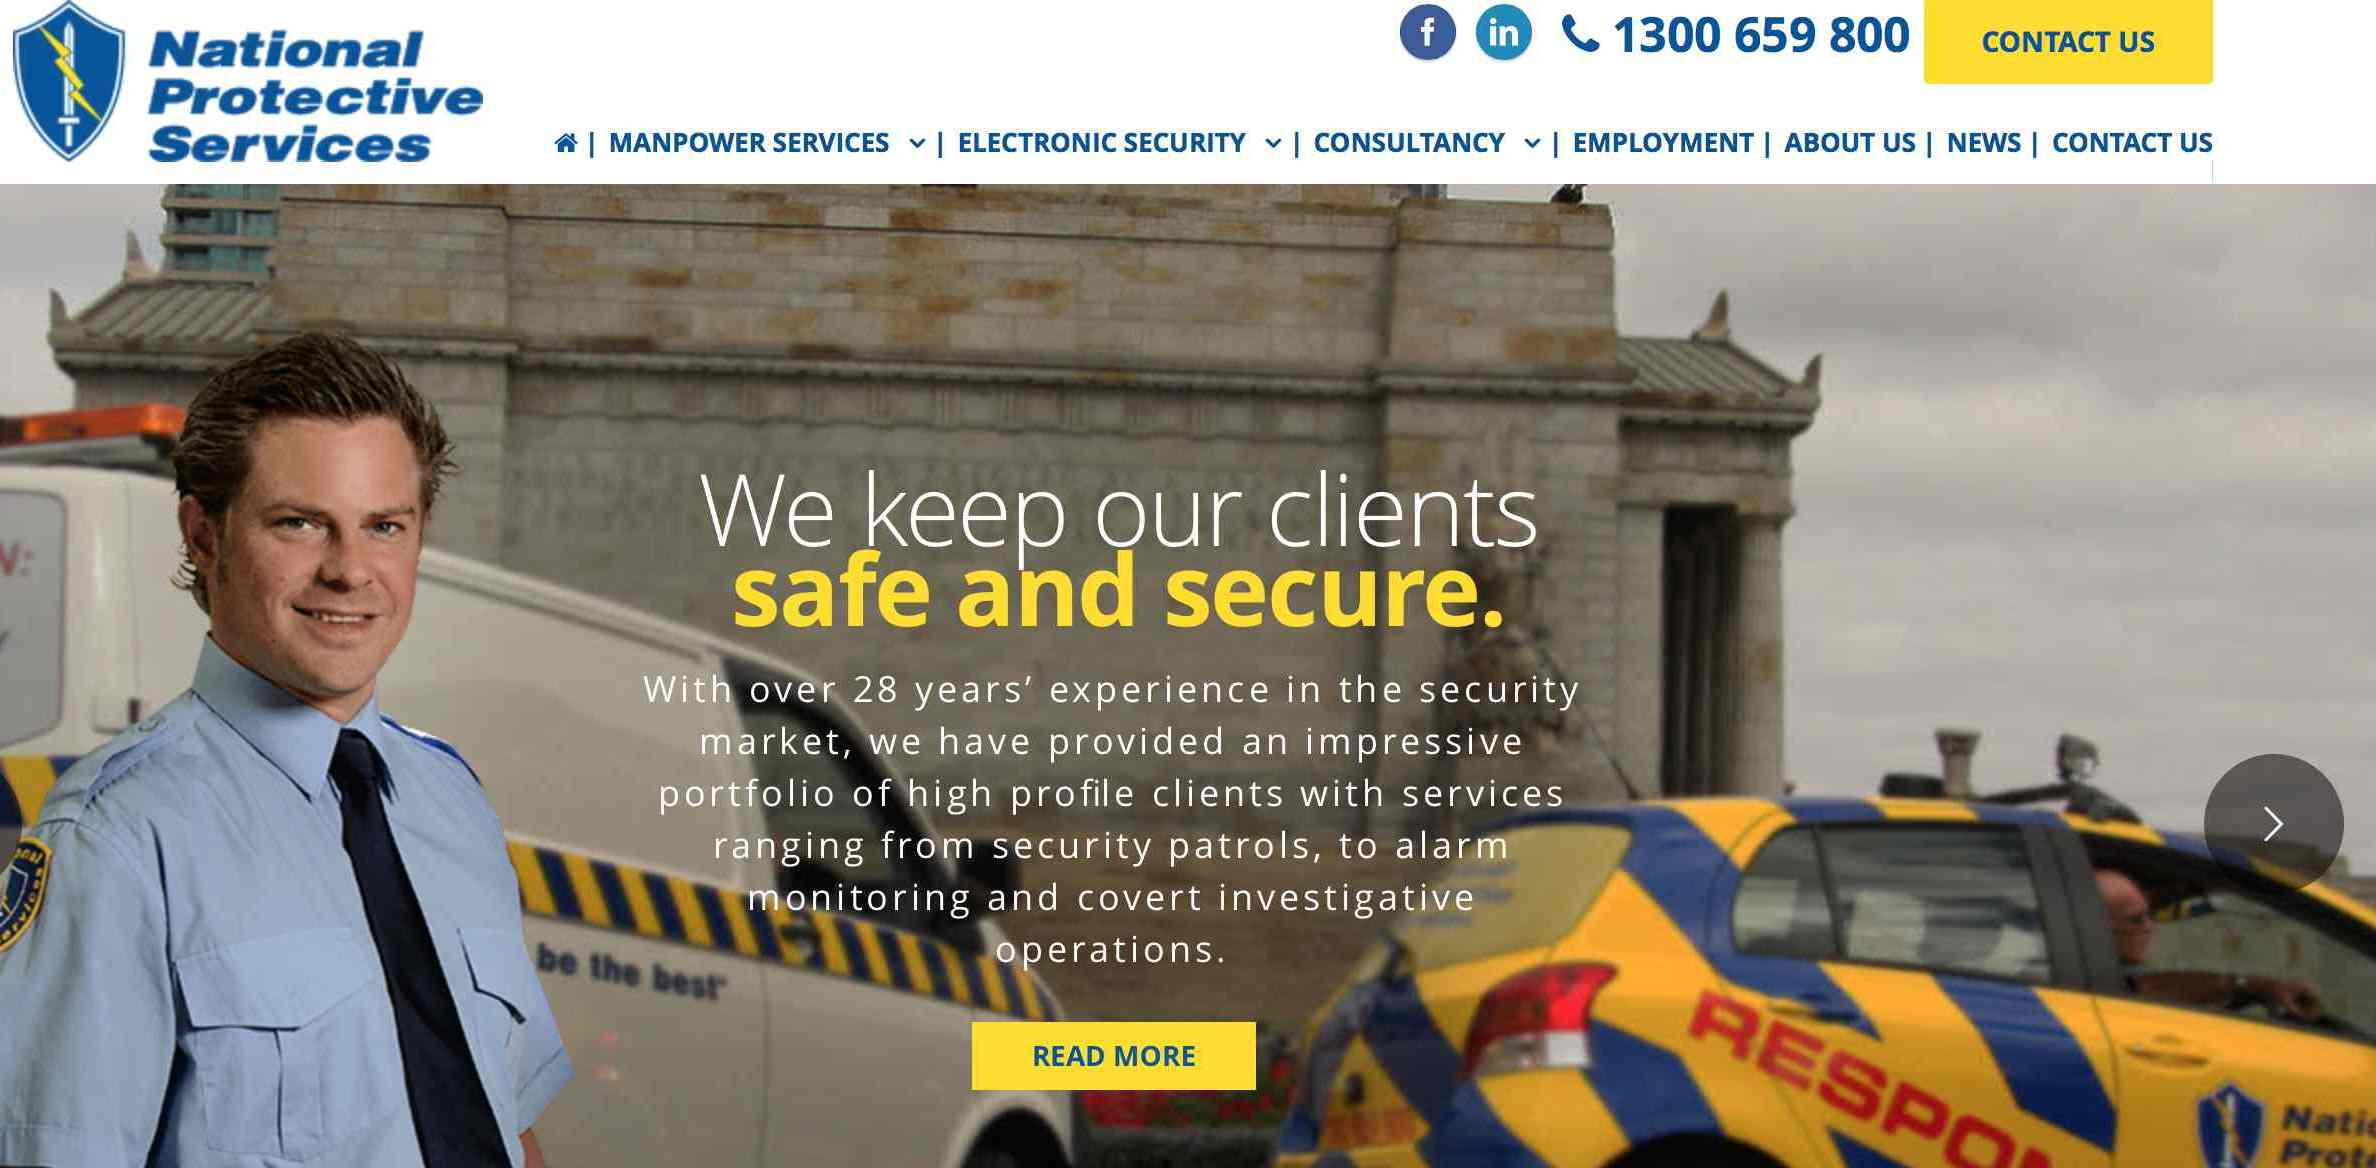 Full service security solutions